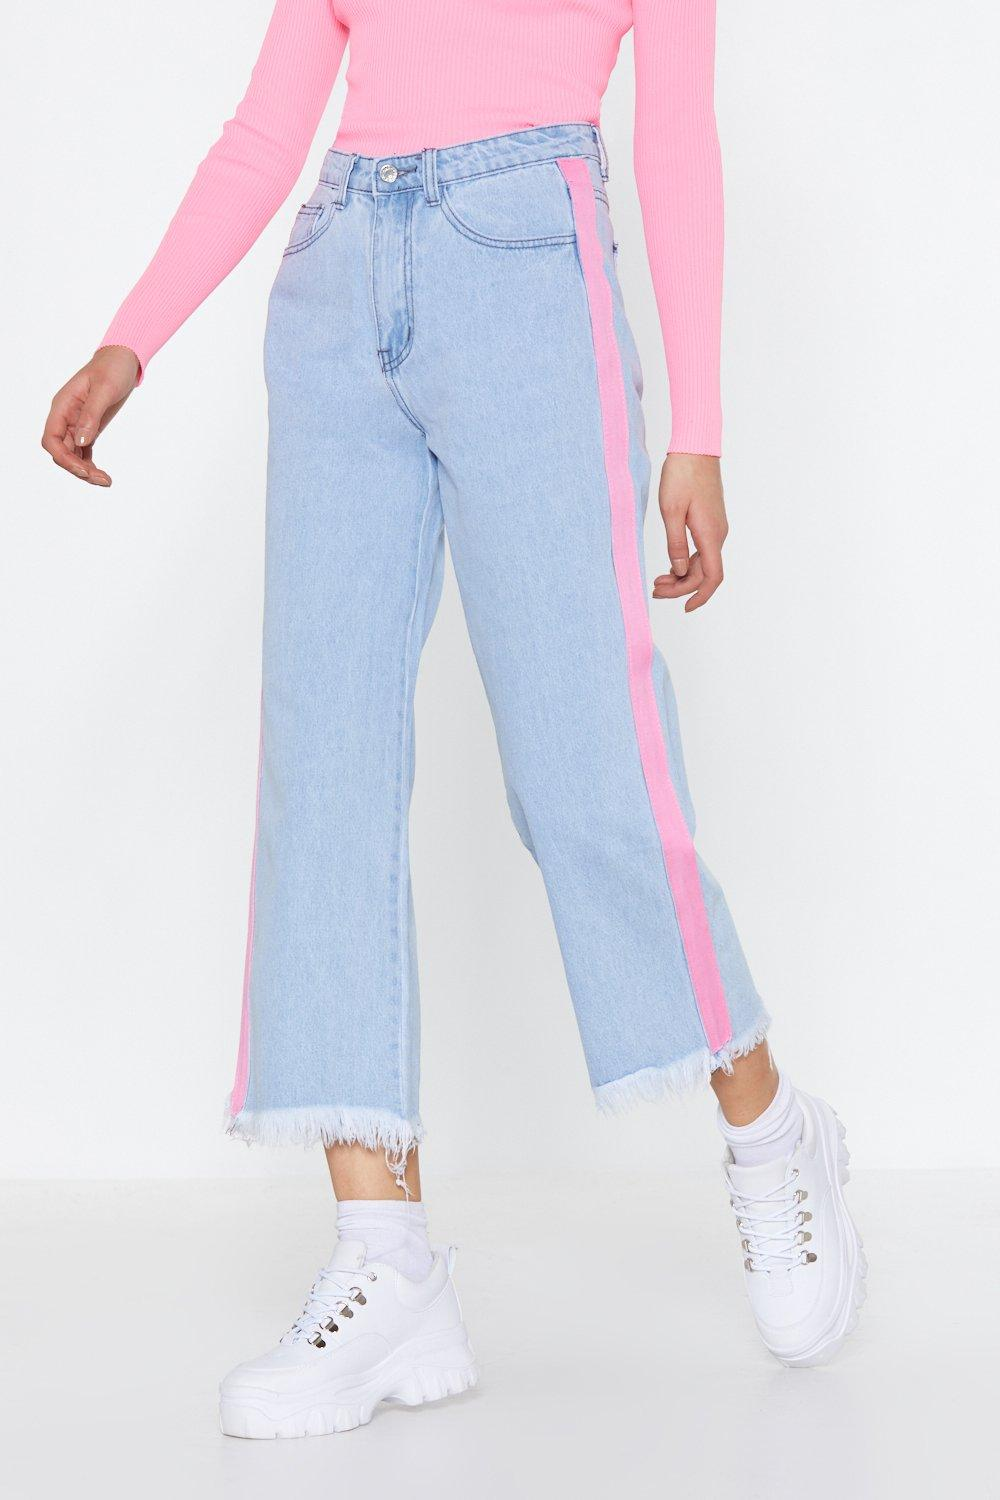 c17309ebb3 Jean court Bande Latérale | Shop Clothes at Nasty Gal!